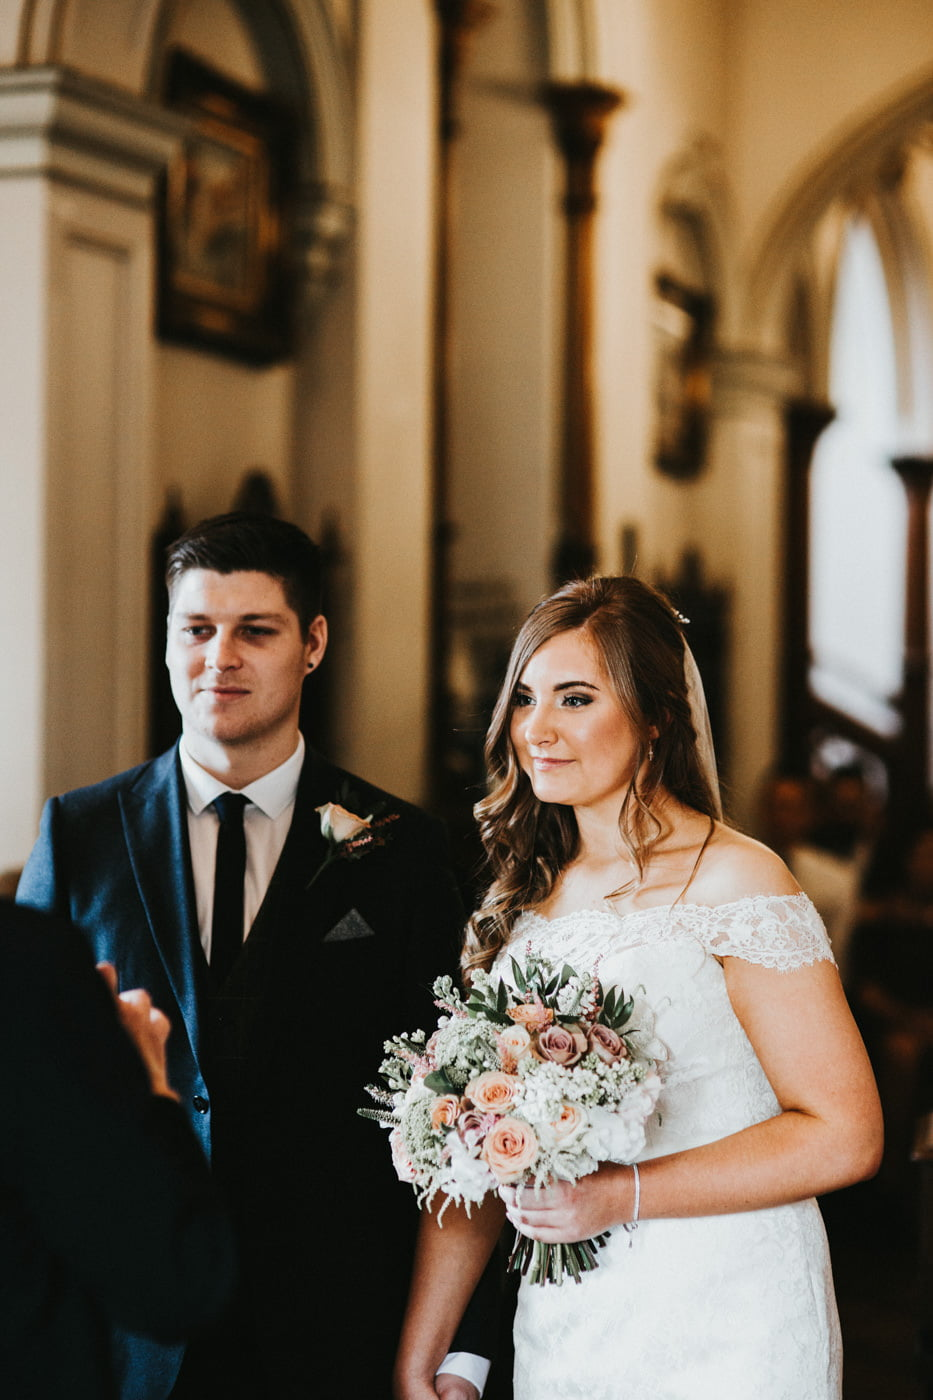 Chloe and Lewis, Orchardleigh House, Somerset 39